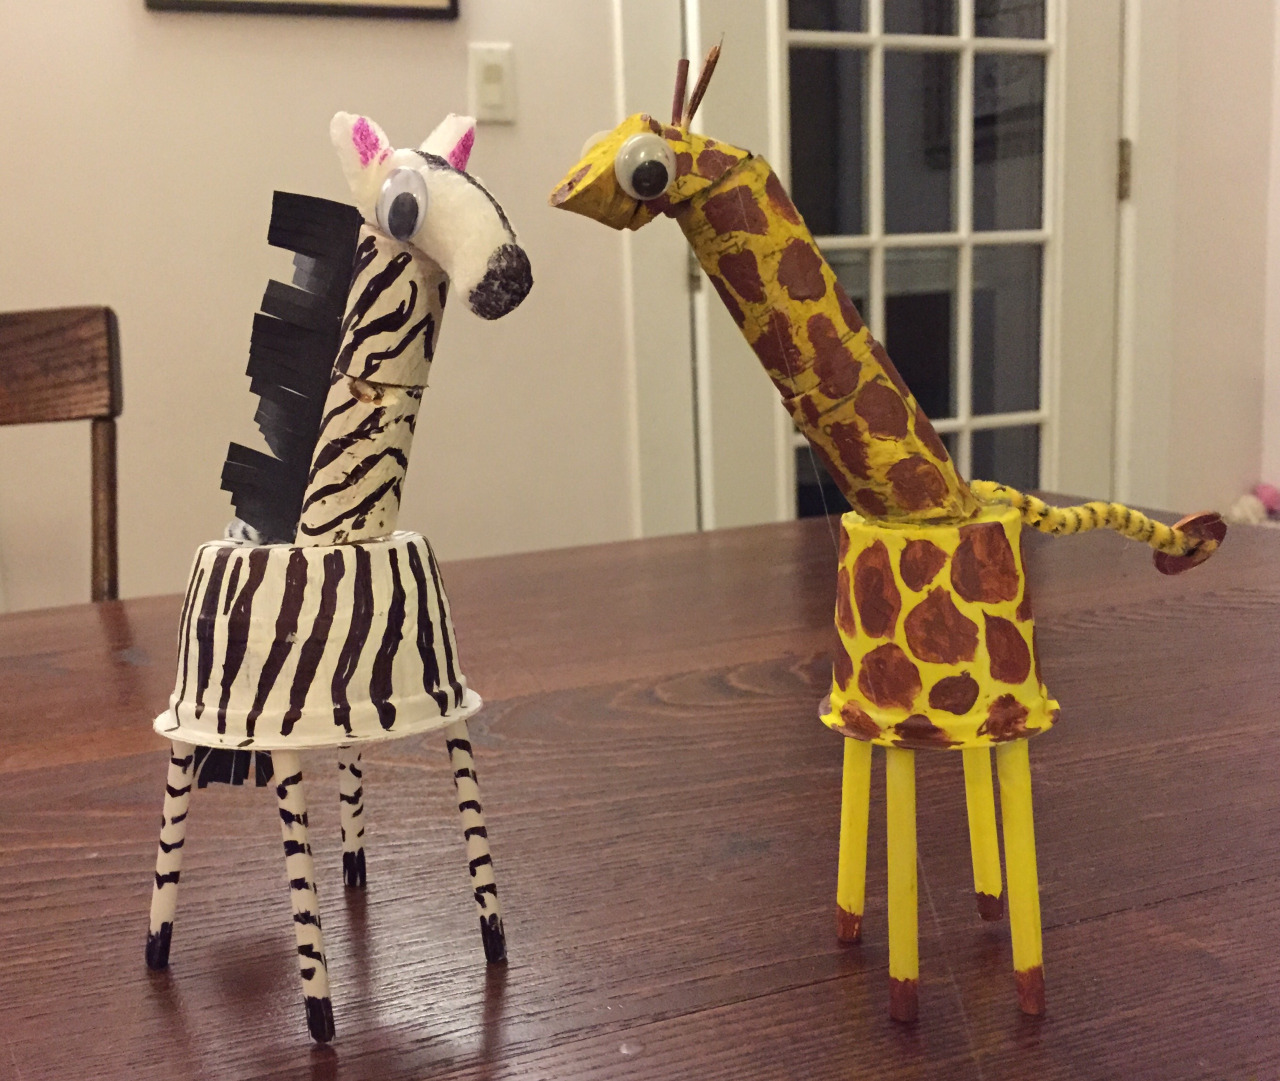 Class 4: Zebra or Giraffe   Not sure if this is a recipe for disaster — giving the kids a choice, but we'll see.   Applesauce container for the zebra   K cup for the giraffe  Corks! Some sliced on the diagonal for the neck  Straws and chopsticks for the legs.  Packing peanuts for the zebra's head  Penny for the giraffe's tail. Only because I needed a counter balance for the heavy cork neck!